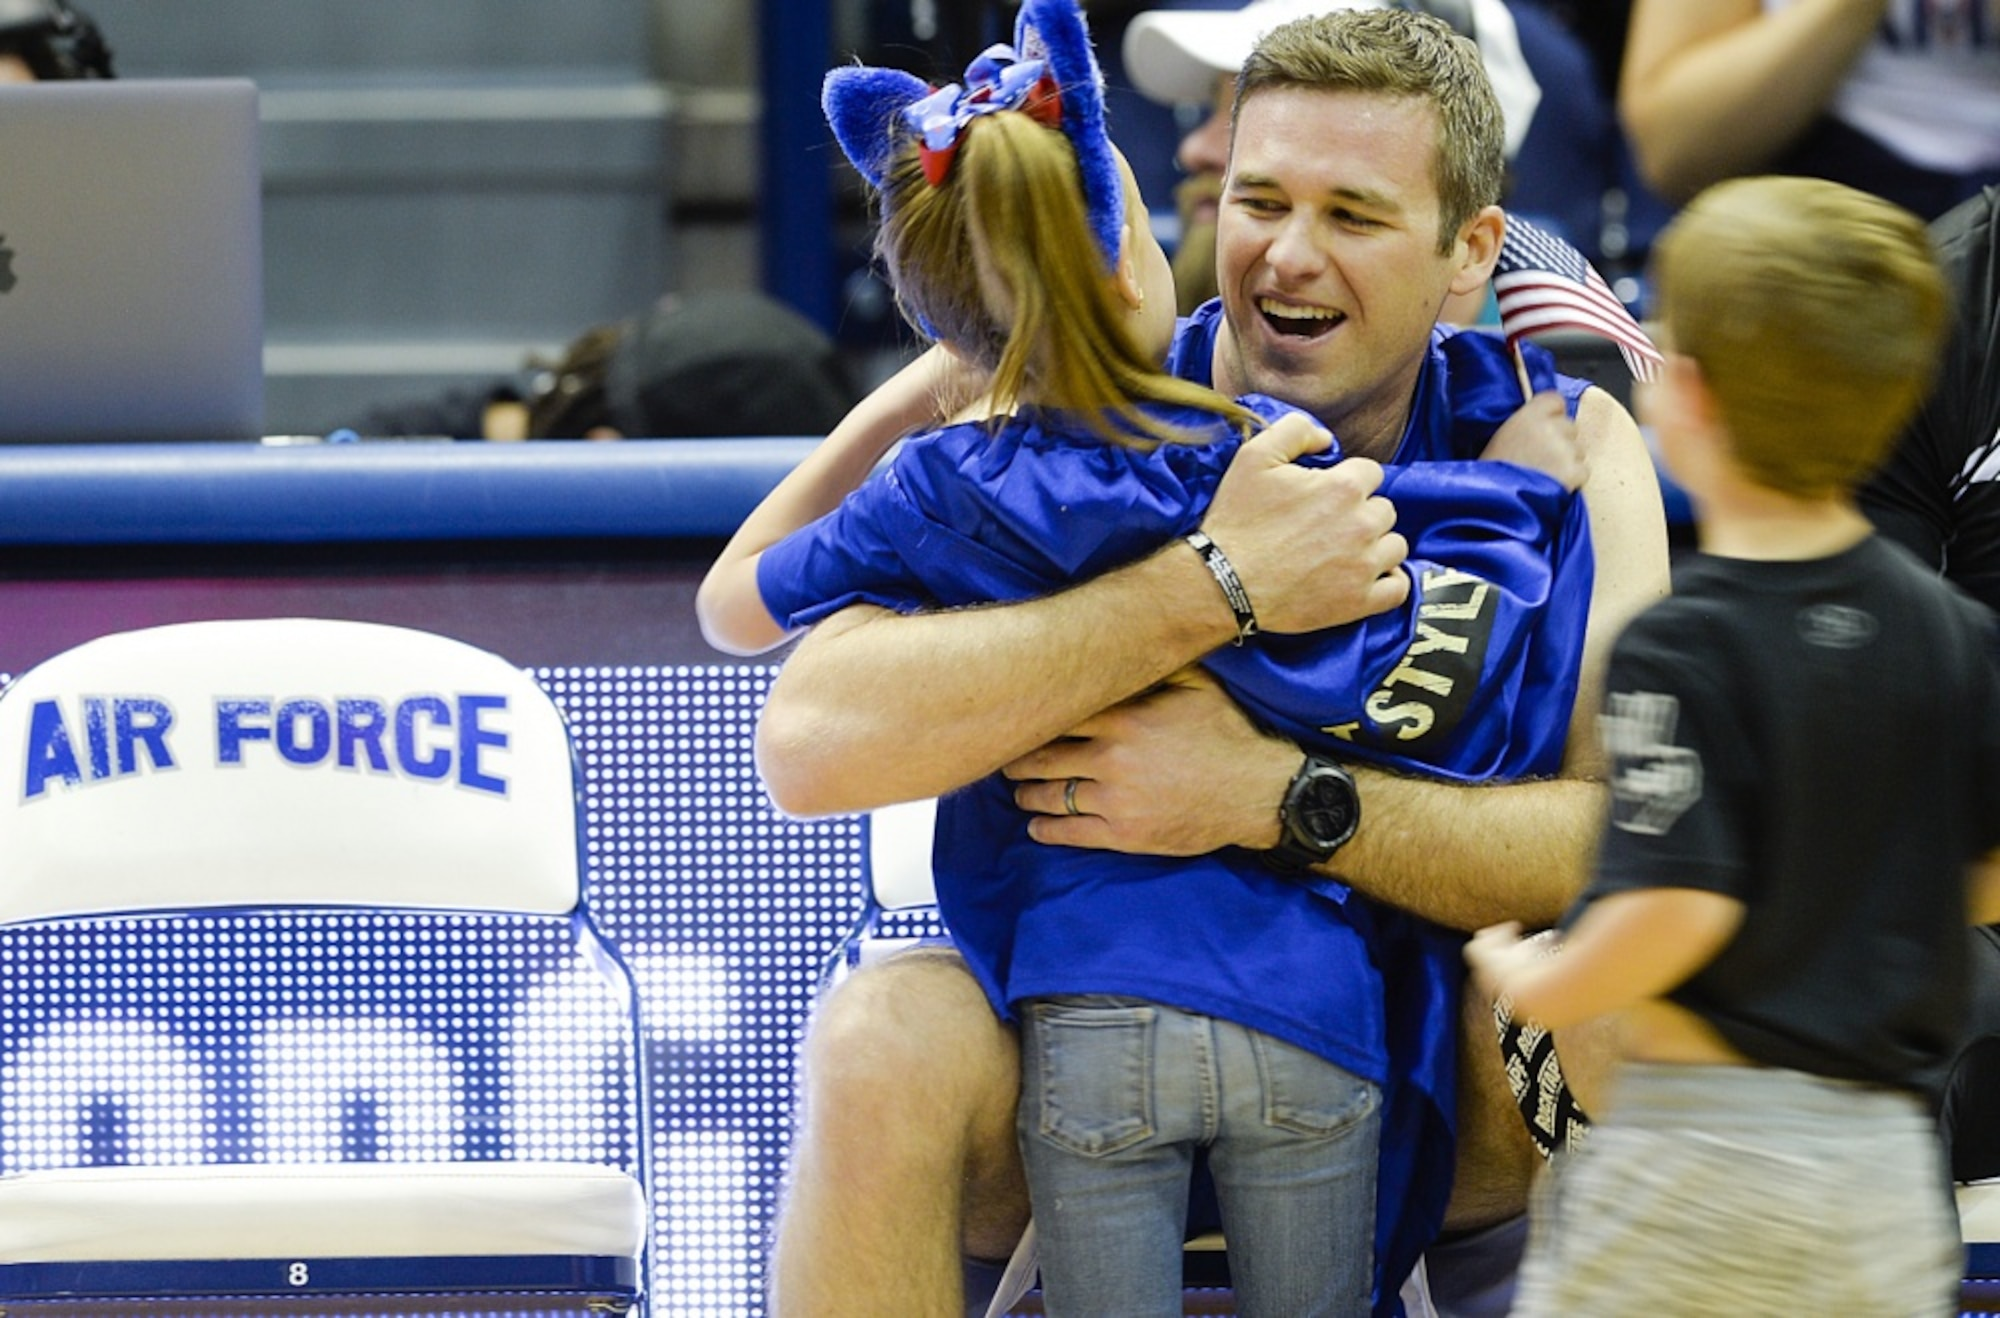 Team Air Force athlete Capt. Hunter Barnhill receives a hug from his children after winning silver in the rowing competition during the Department of Defense Warrior Games at the U.S. Air Force Academy, Colorado Springs, Colo., June 9, 2018. Approximately 300 wounded, ill and injured service members and veterans participated in the Games. Competing athletes represented the U.S. Air Force, Army, Marine Corps, Navy, and Special Operations Command, as well as the U.K. Armed Forces, Australian Defence Force and Canadian Armed Forces. (U.S. Air Force photo by Tech Sgt. Anthony Nelson Jr.)